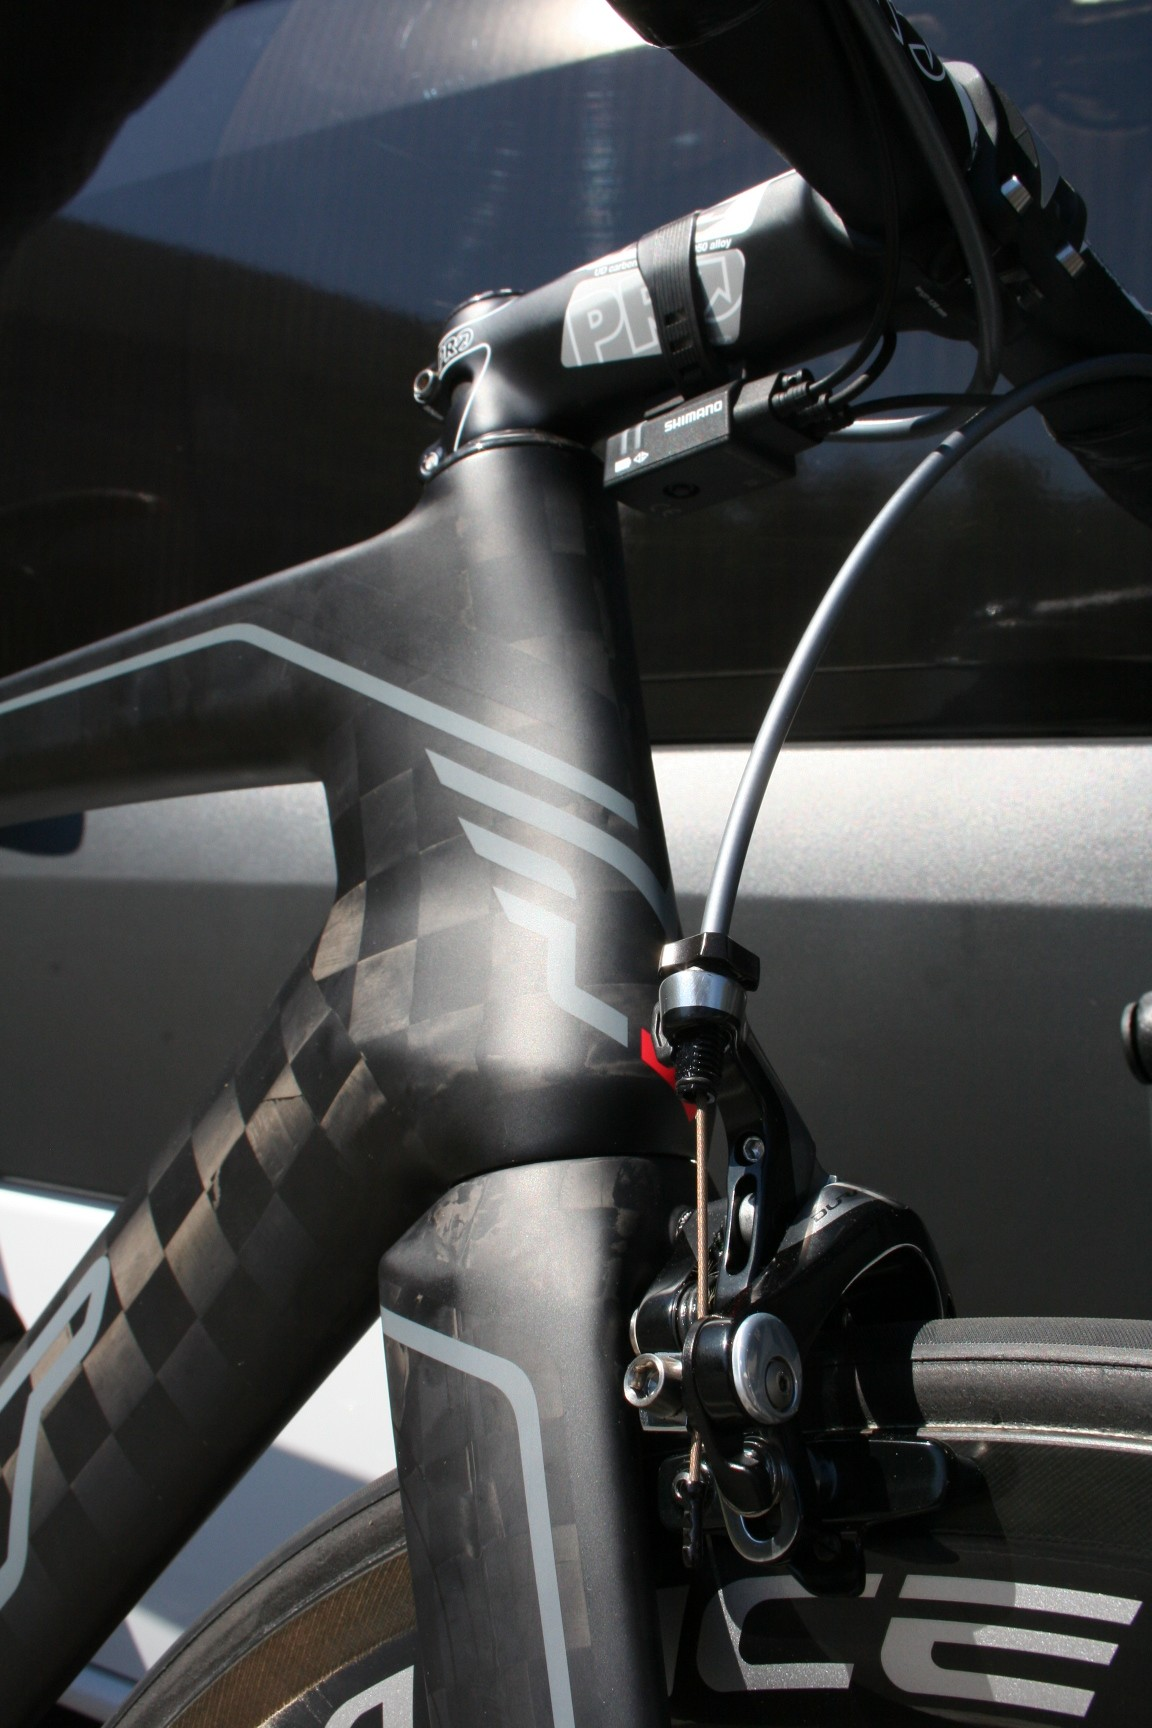 The fork crown is aerodynamically designed to help air flow over the head tube.